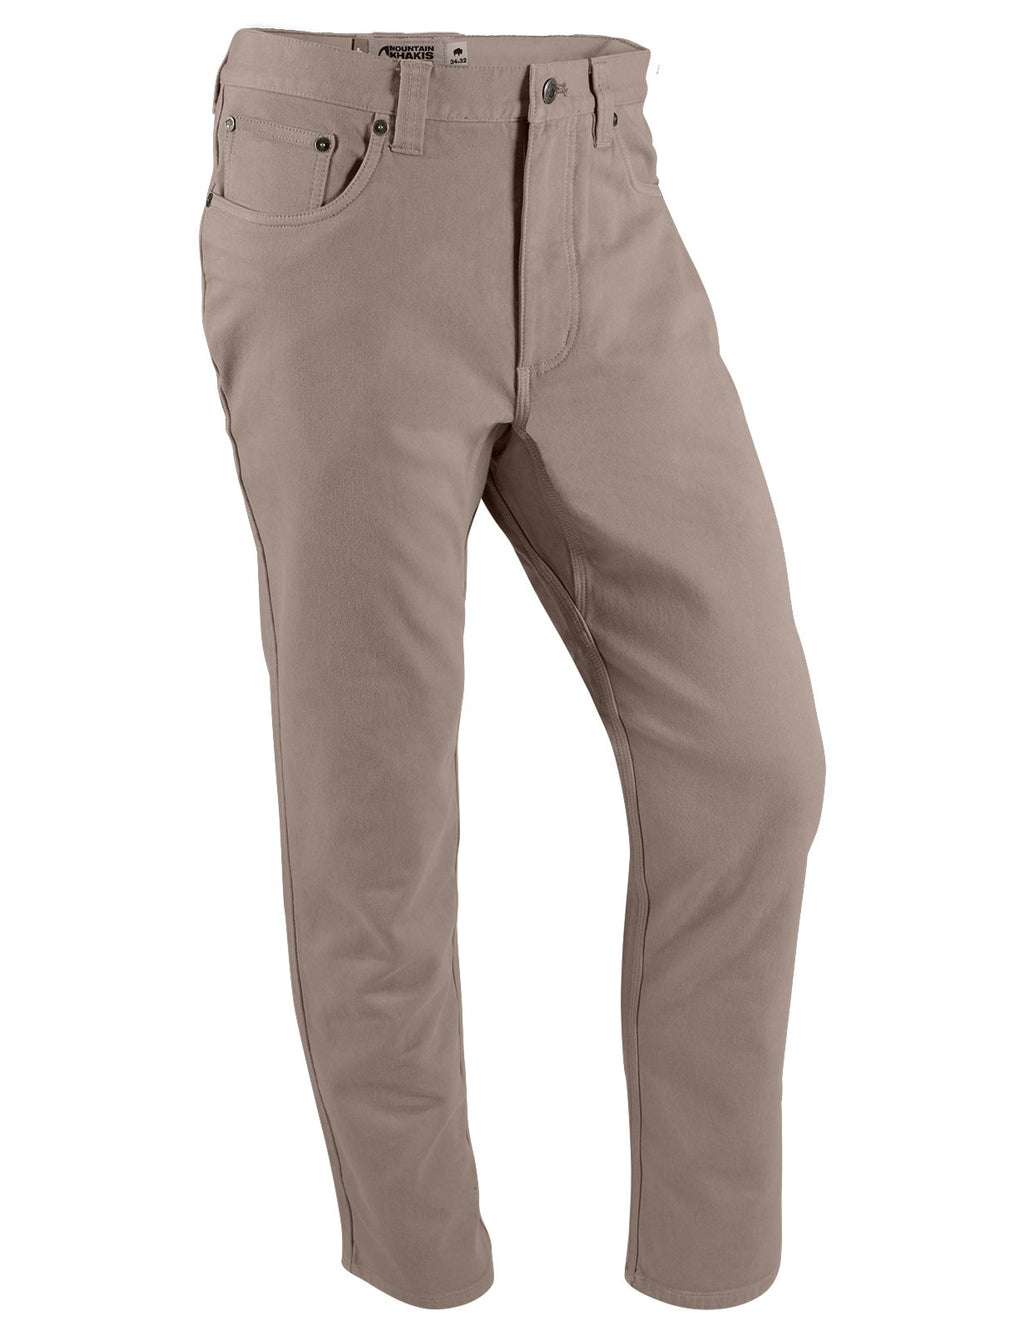 Front view of the Mountain Khakis Mitchell Pant in Firma color.